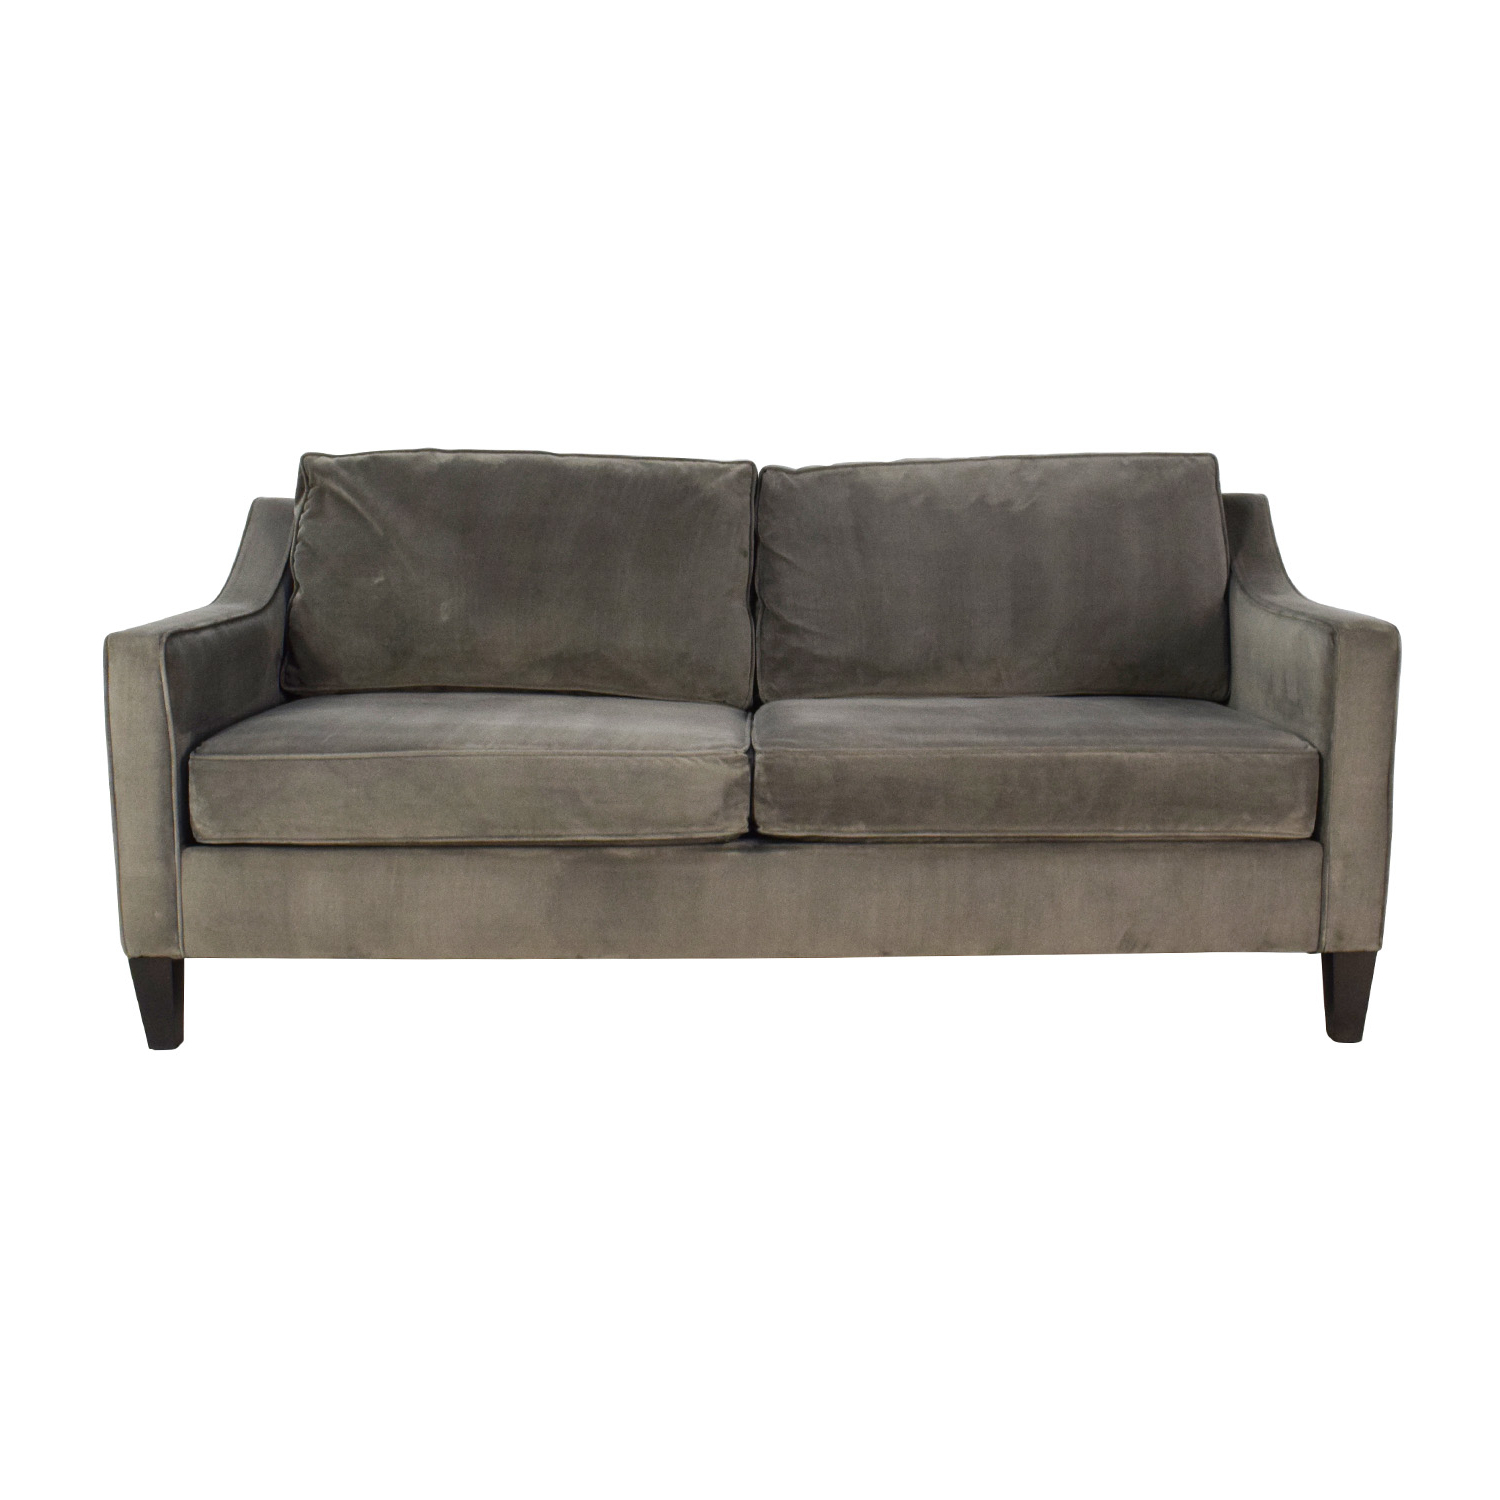 [%56% Off – West Elm West Elm Paidge Sofa / Sofas With Well Known Elm Sofa Chairs|elm Sofa Chairs Inside Widely Used 56% Off – West Elm West Elm Paidge Sofa / Sofas|2018 Elm Sofa Chairs Pertaining To 56% Off – West Elm West Elm Paidge Sofa / Sofas|latest 56% Off – West Elm West Elm Paidge Sofa / Sofas Inside Elm Sofa Chairs%] (View 12 of 20)